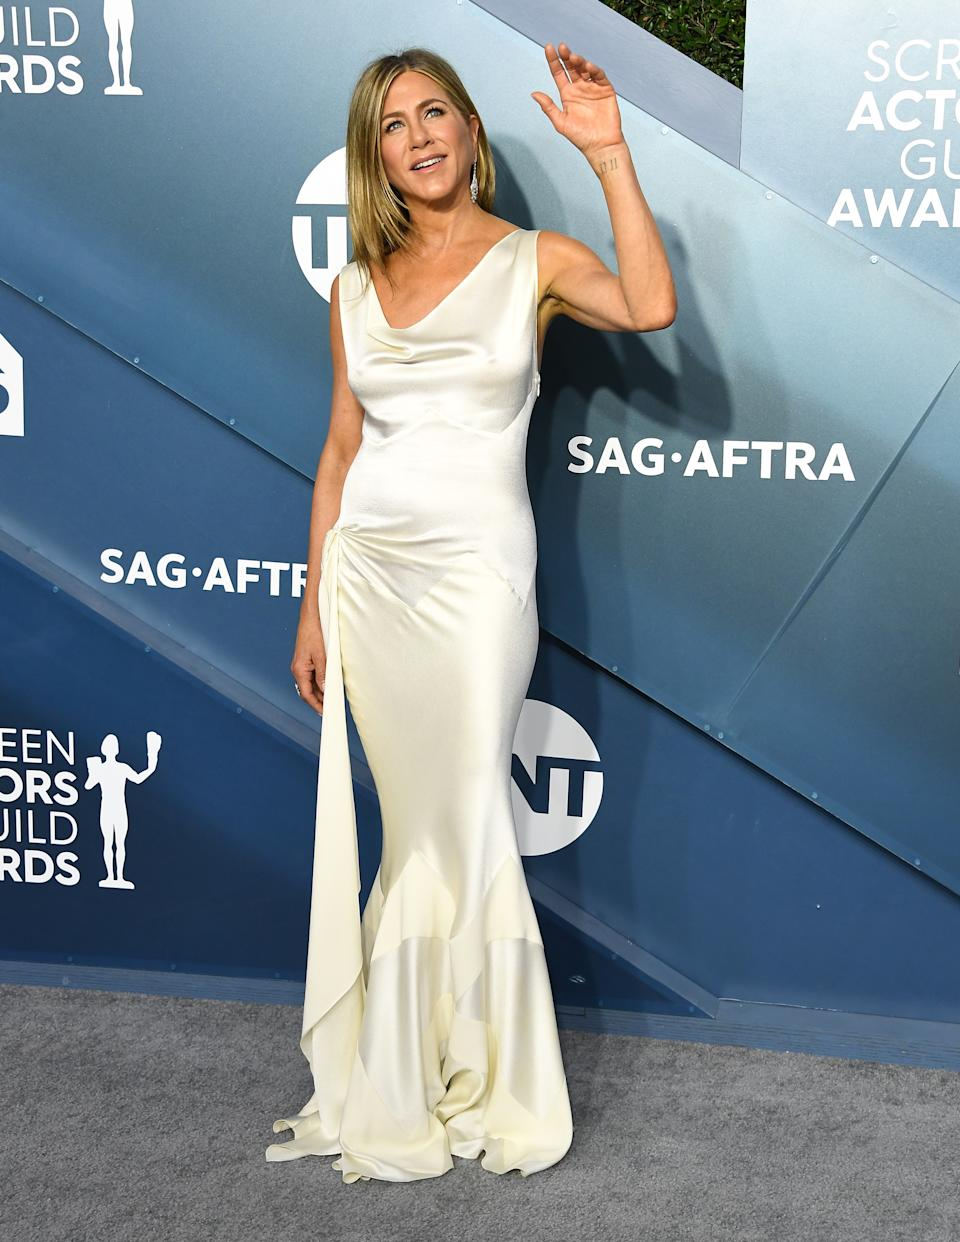 LOS ANGELES, CALIFORNIA - JANUARY 19: Jennifer Aniston arrives at the 26th Annual Screen ActorsGuild Awards at The Shrine Auditorium on January 19, 2020 in Los Angeles, California. (Photo by Steve Granitz/WireImage)